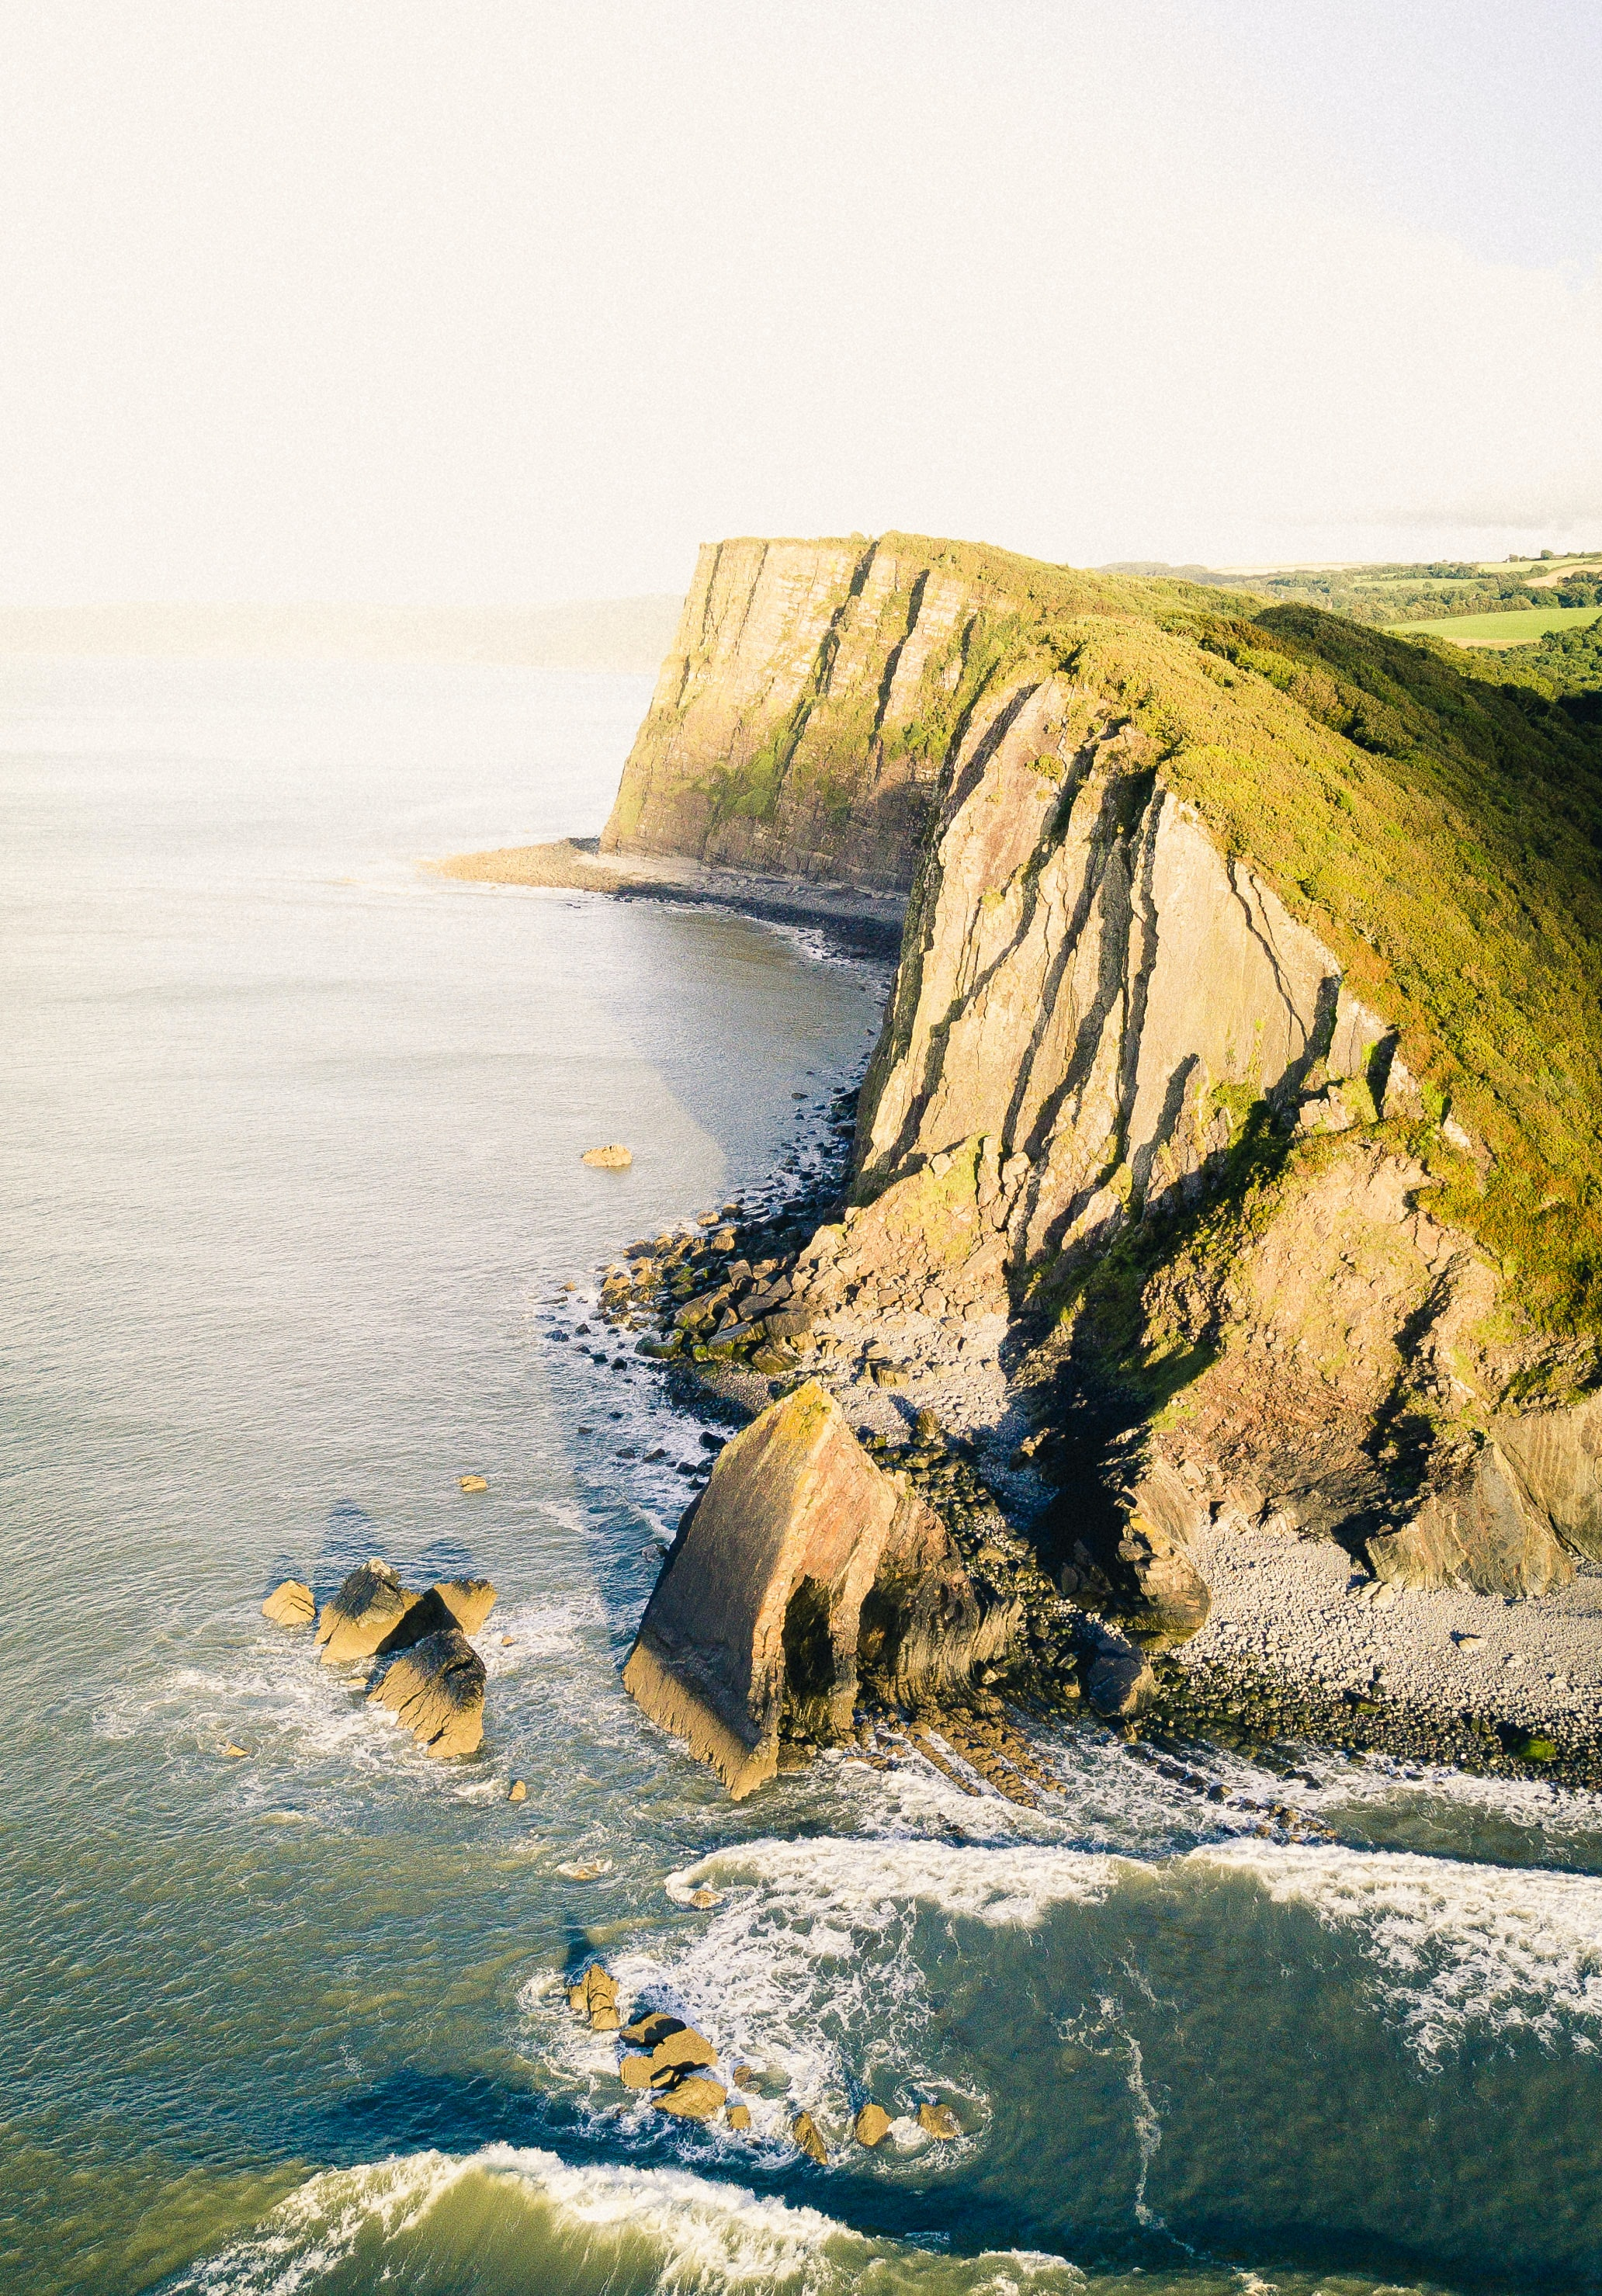 aerial shot of cliff near body of water